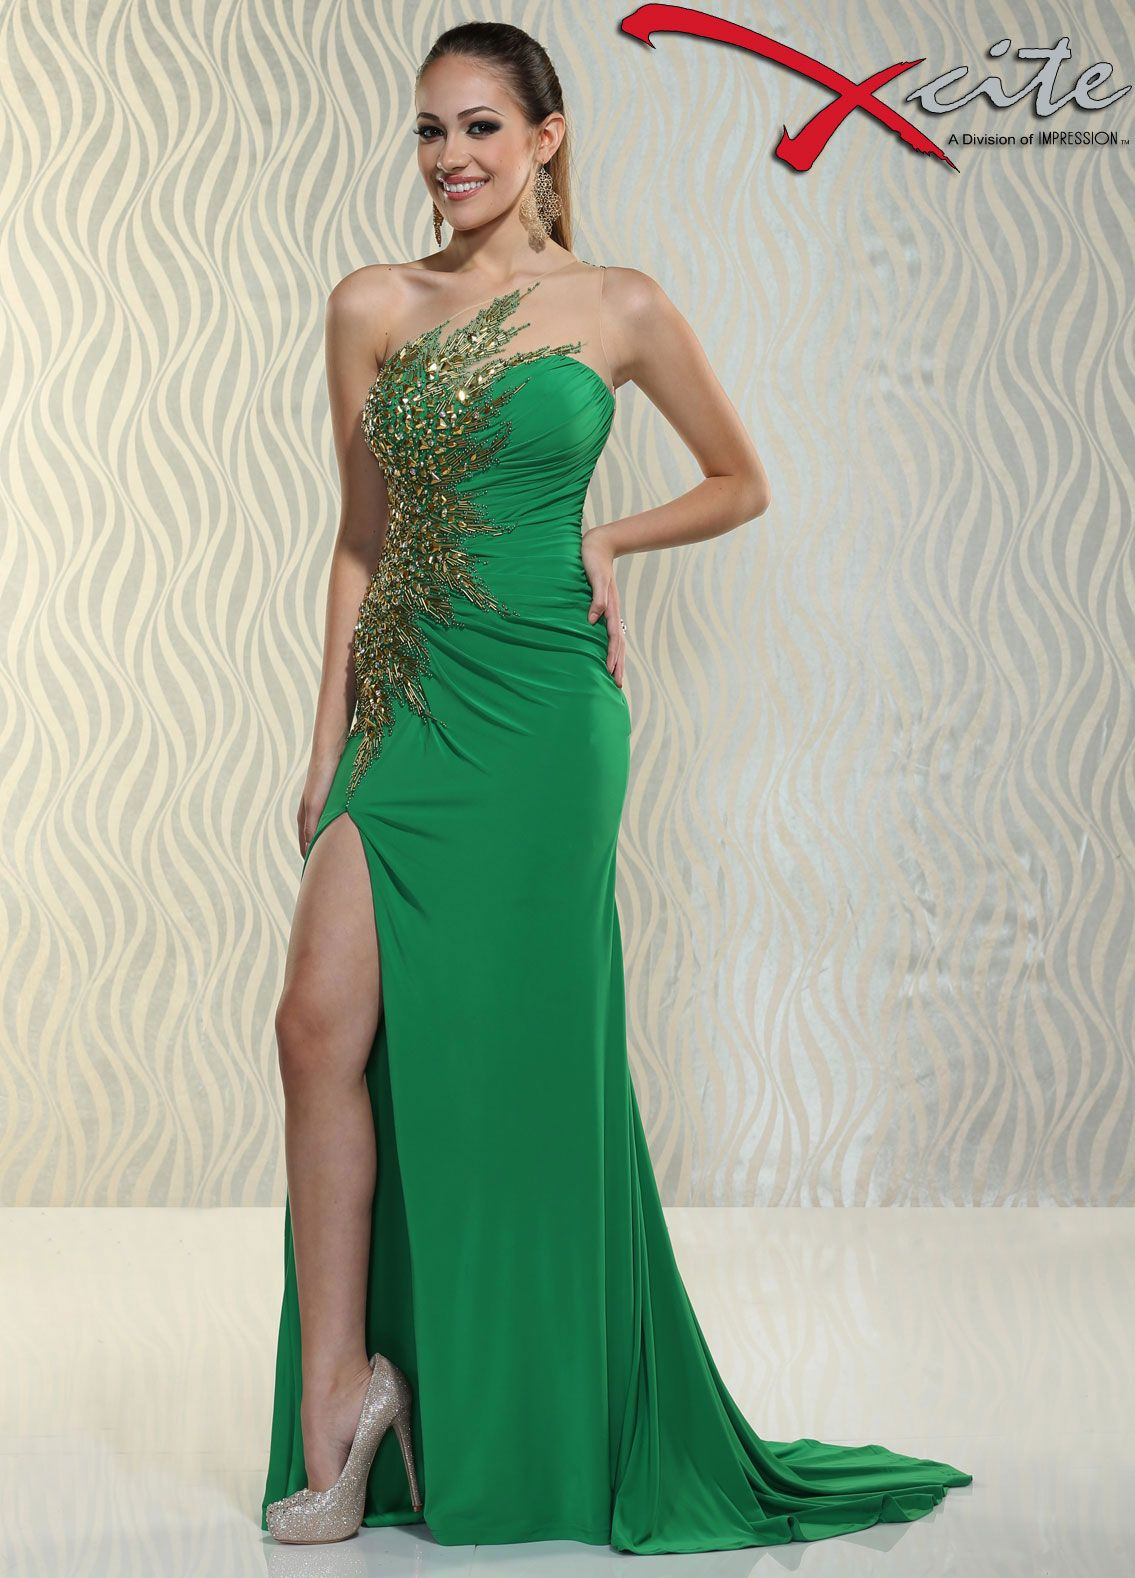 Gorgeous green prom dress  Xcite prom dress pageant dress formal gown evening gown  Fashion